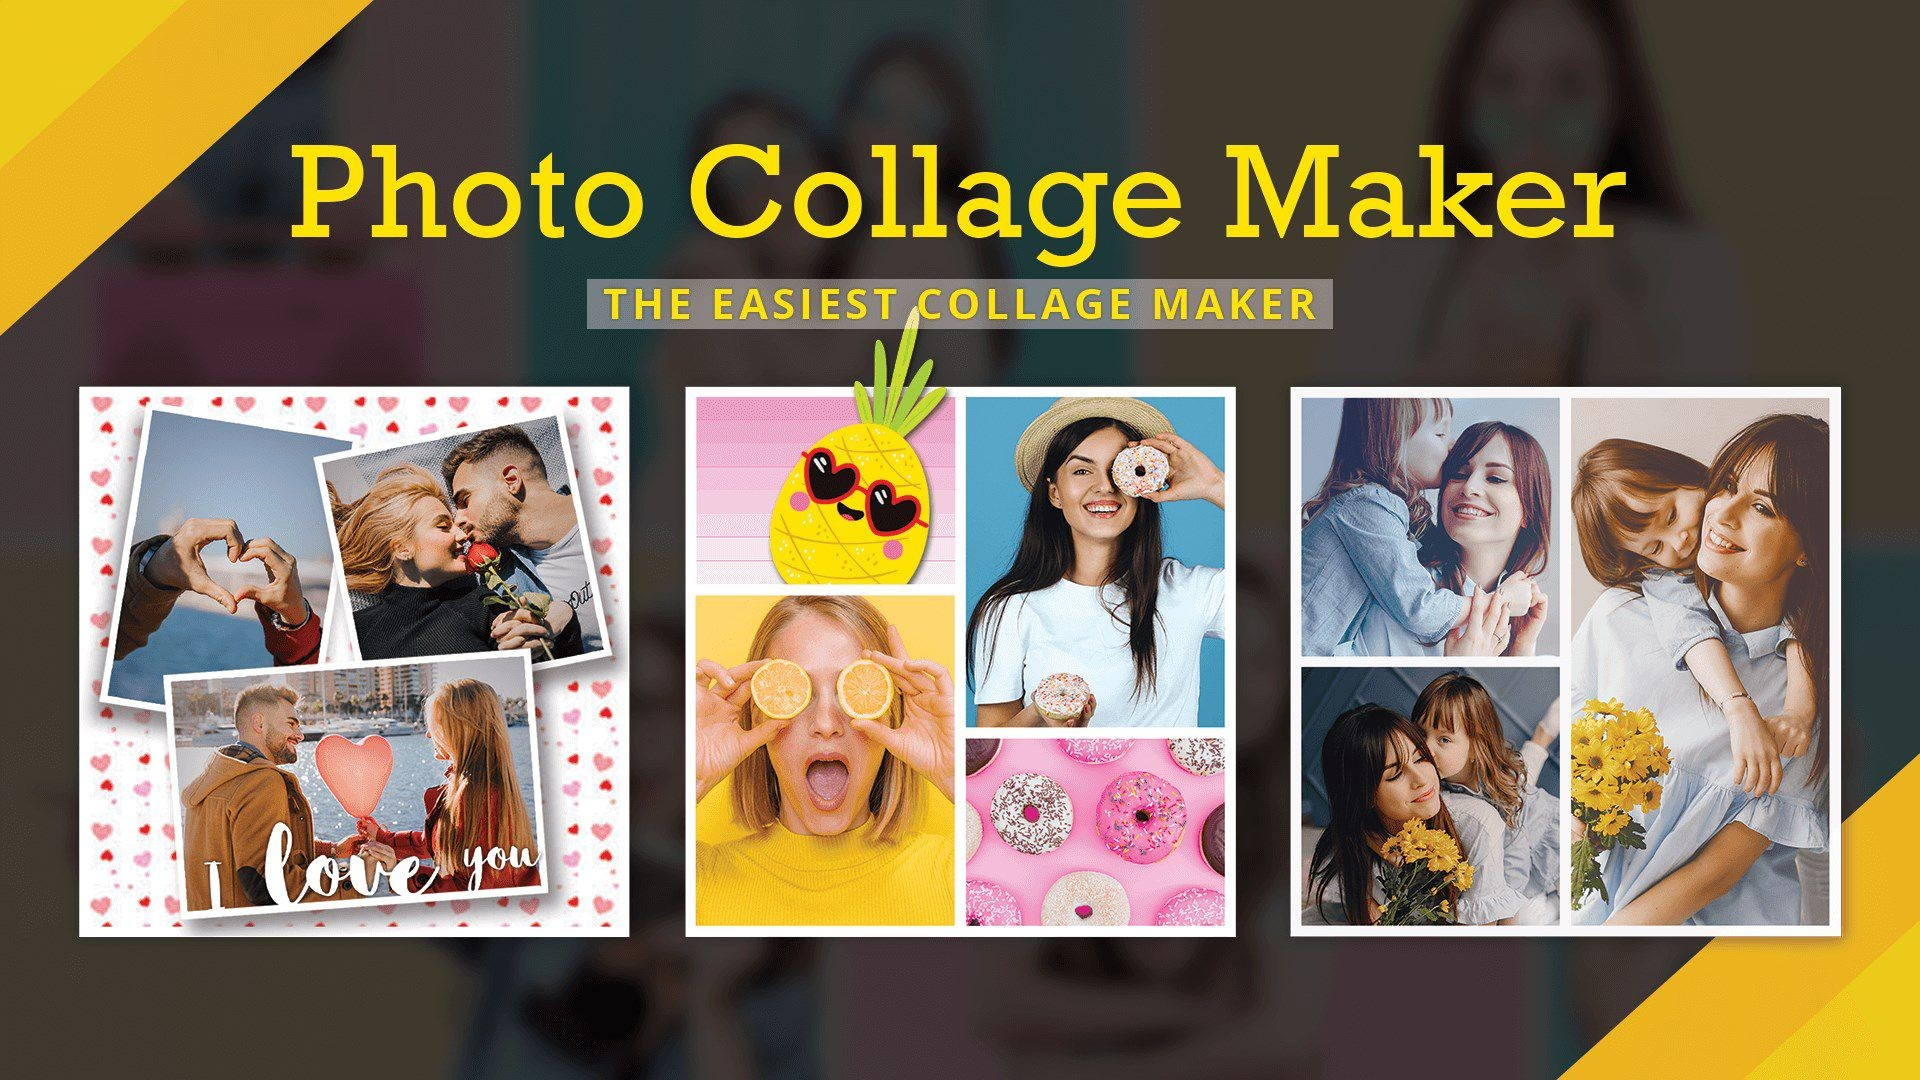 000 Rare Free Photo Collage Template No Download Example 1920